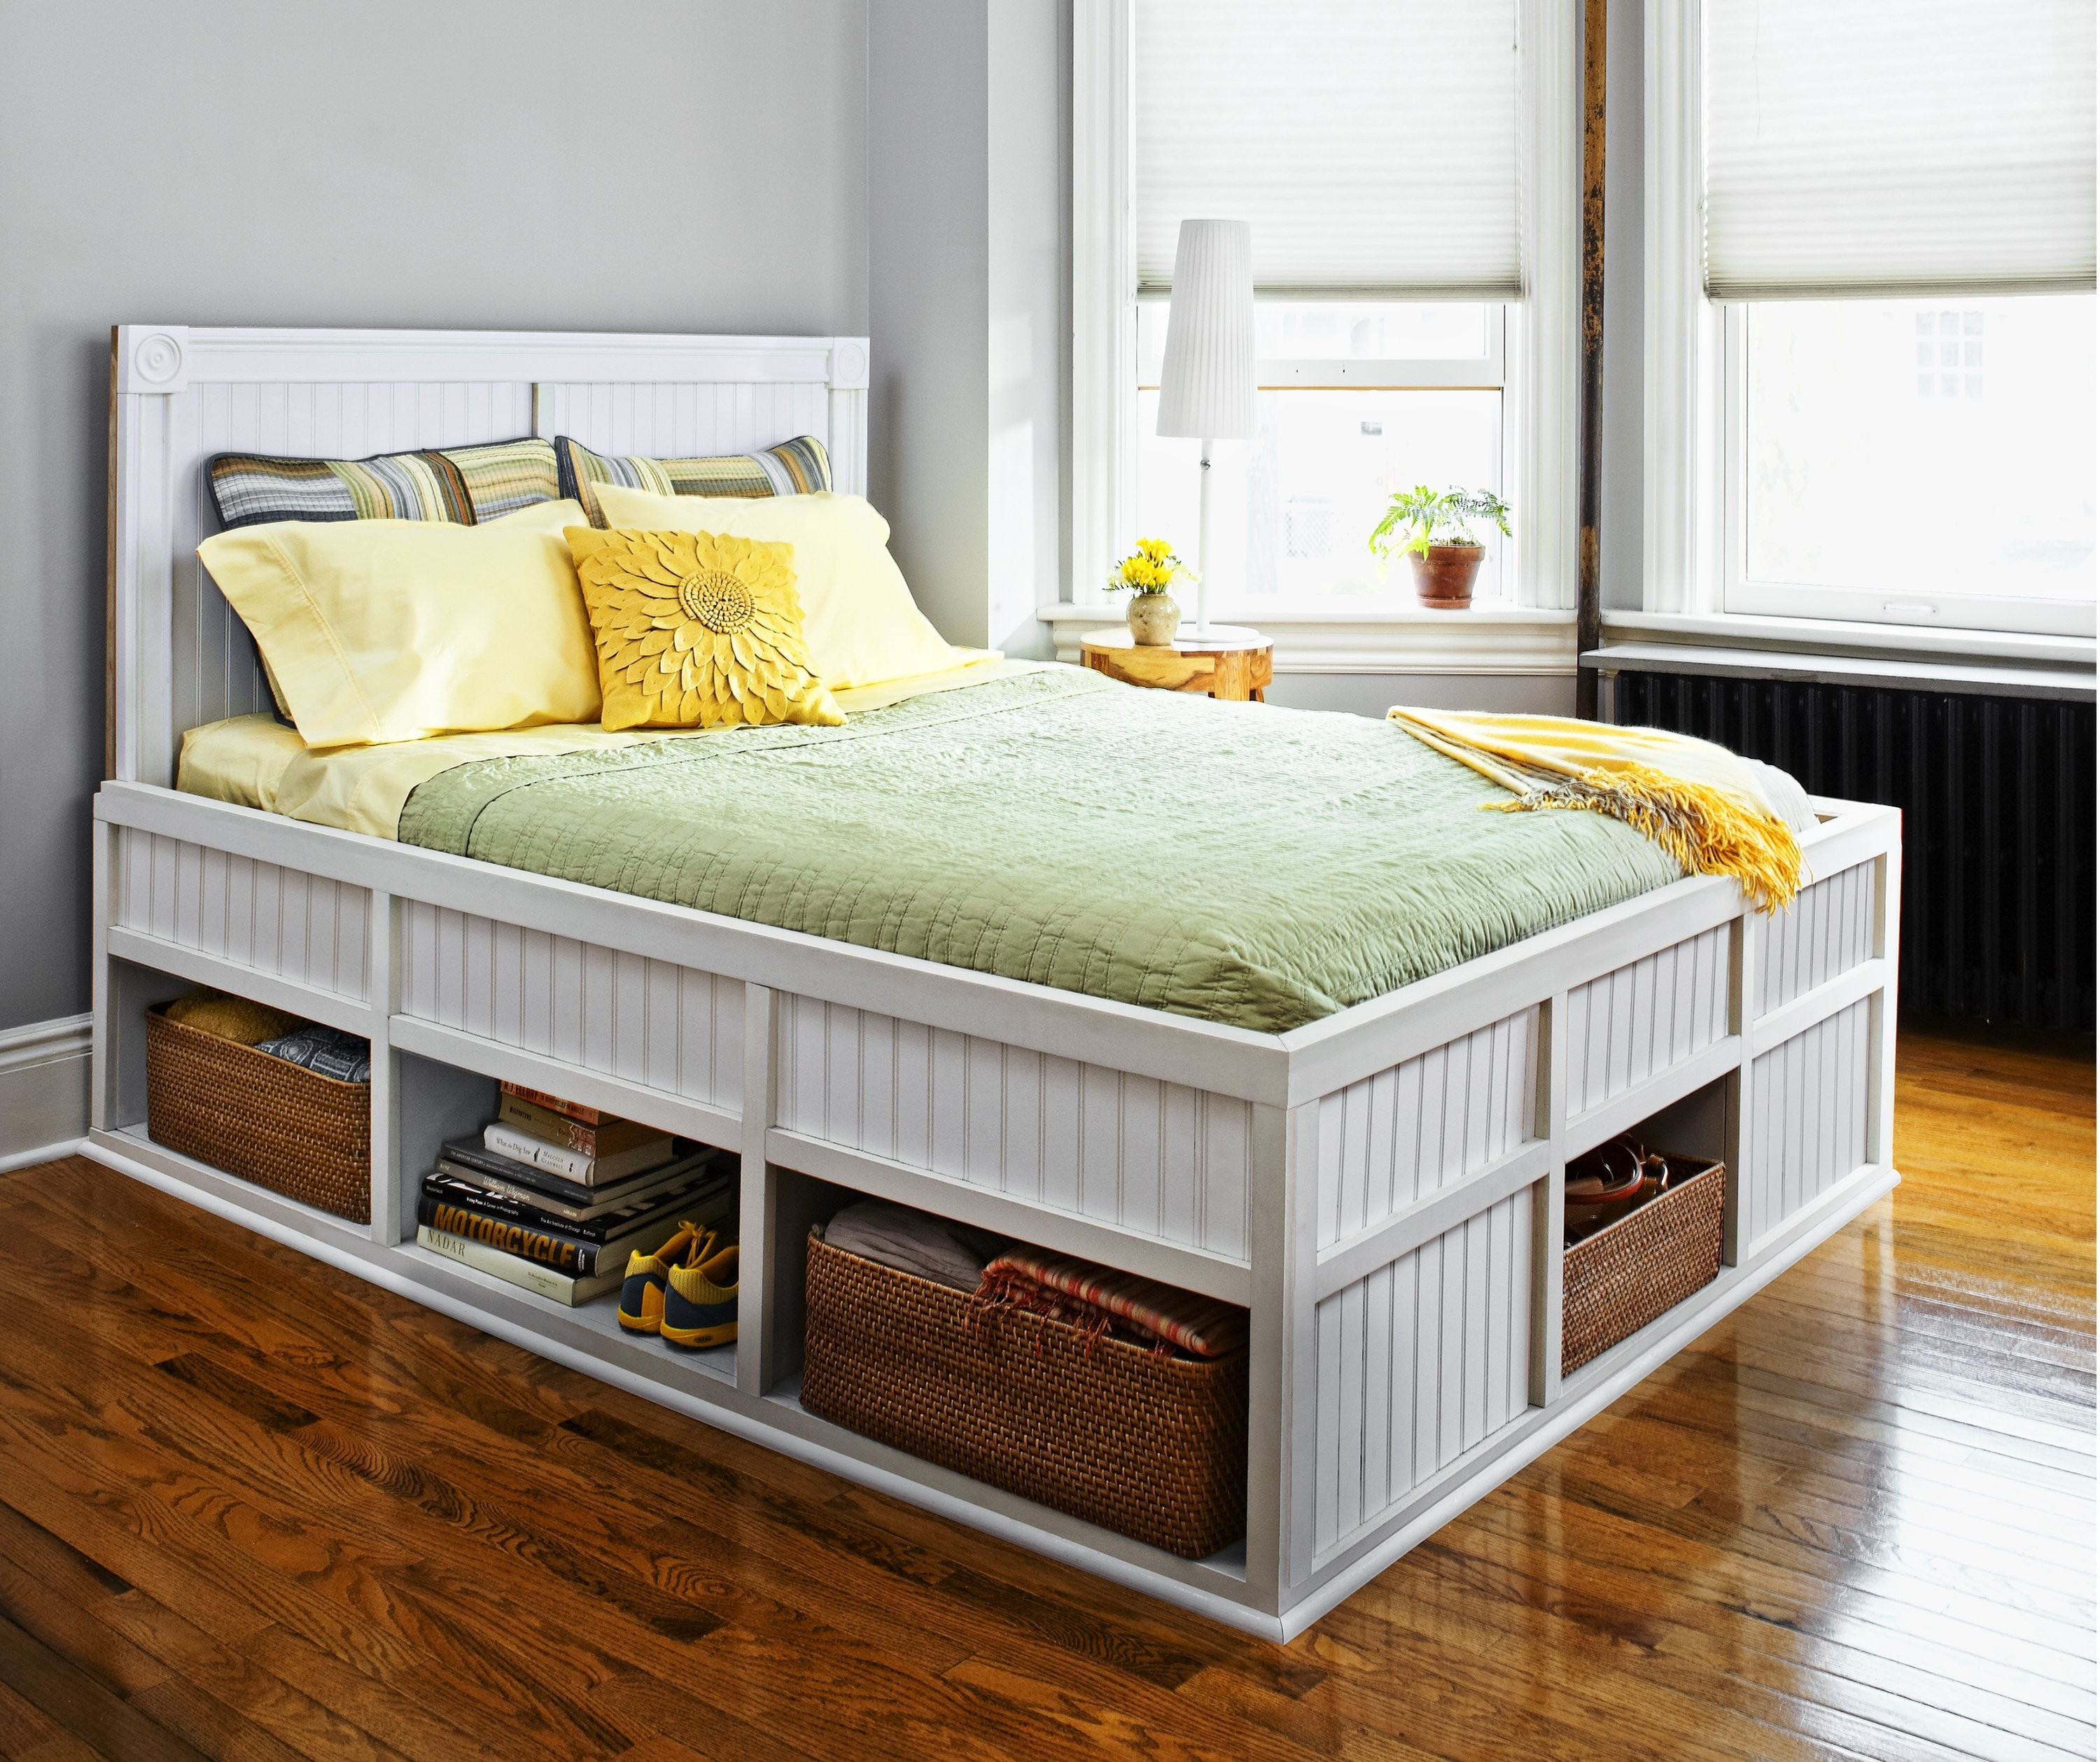 diy hardwood flooring headboard of 30 greatest pics of cool diy bed frames bed frame and bunk bed with regard to cool diy bed frames unique headboards king bed frame with headboard unique elegant simple of cool diy bed frames